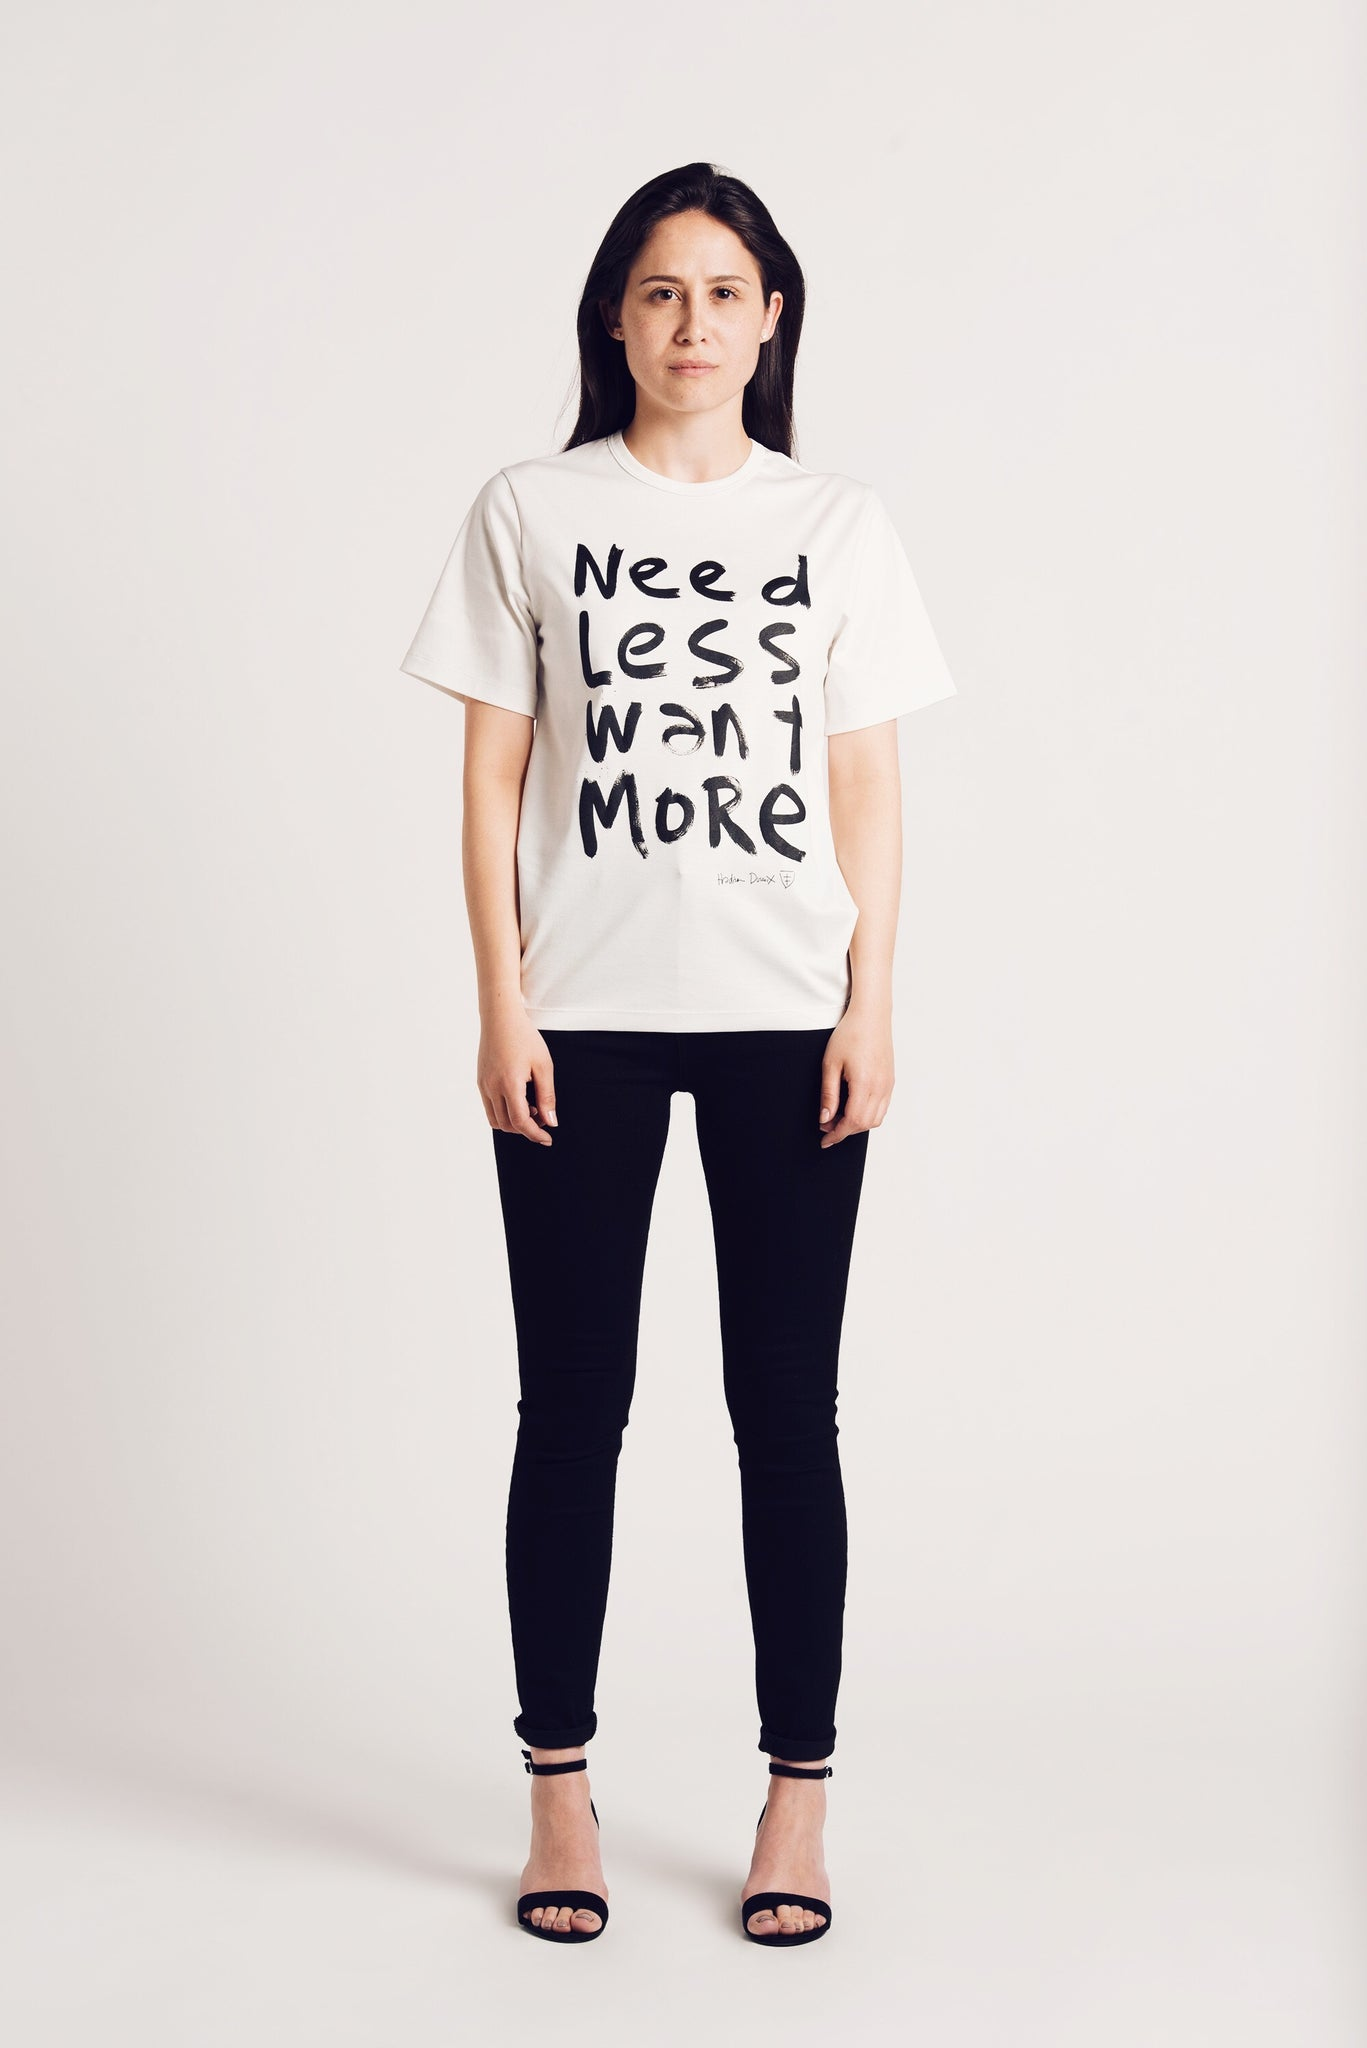 luxury-organic-bio-sustainable-t-shirt-ethical-swiss-made-by-naome-model